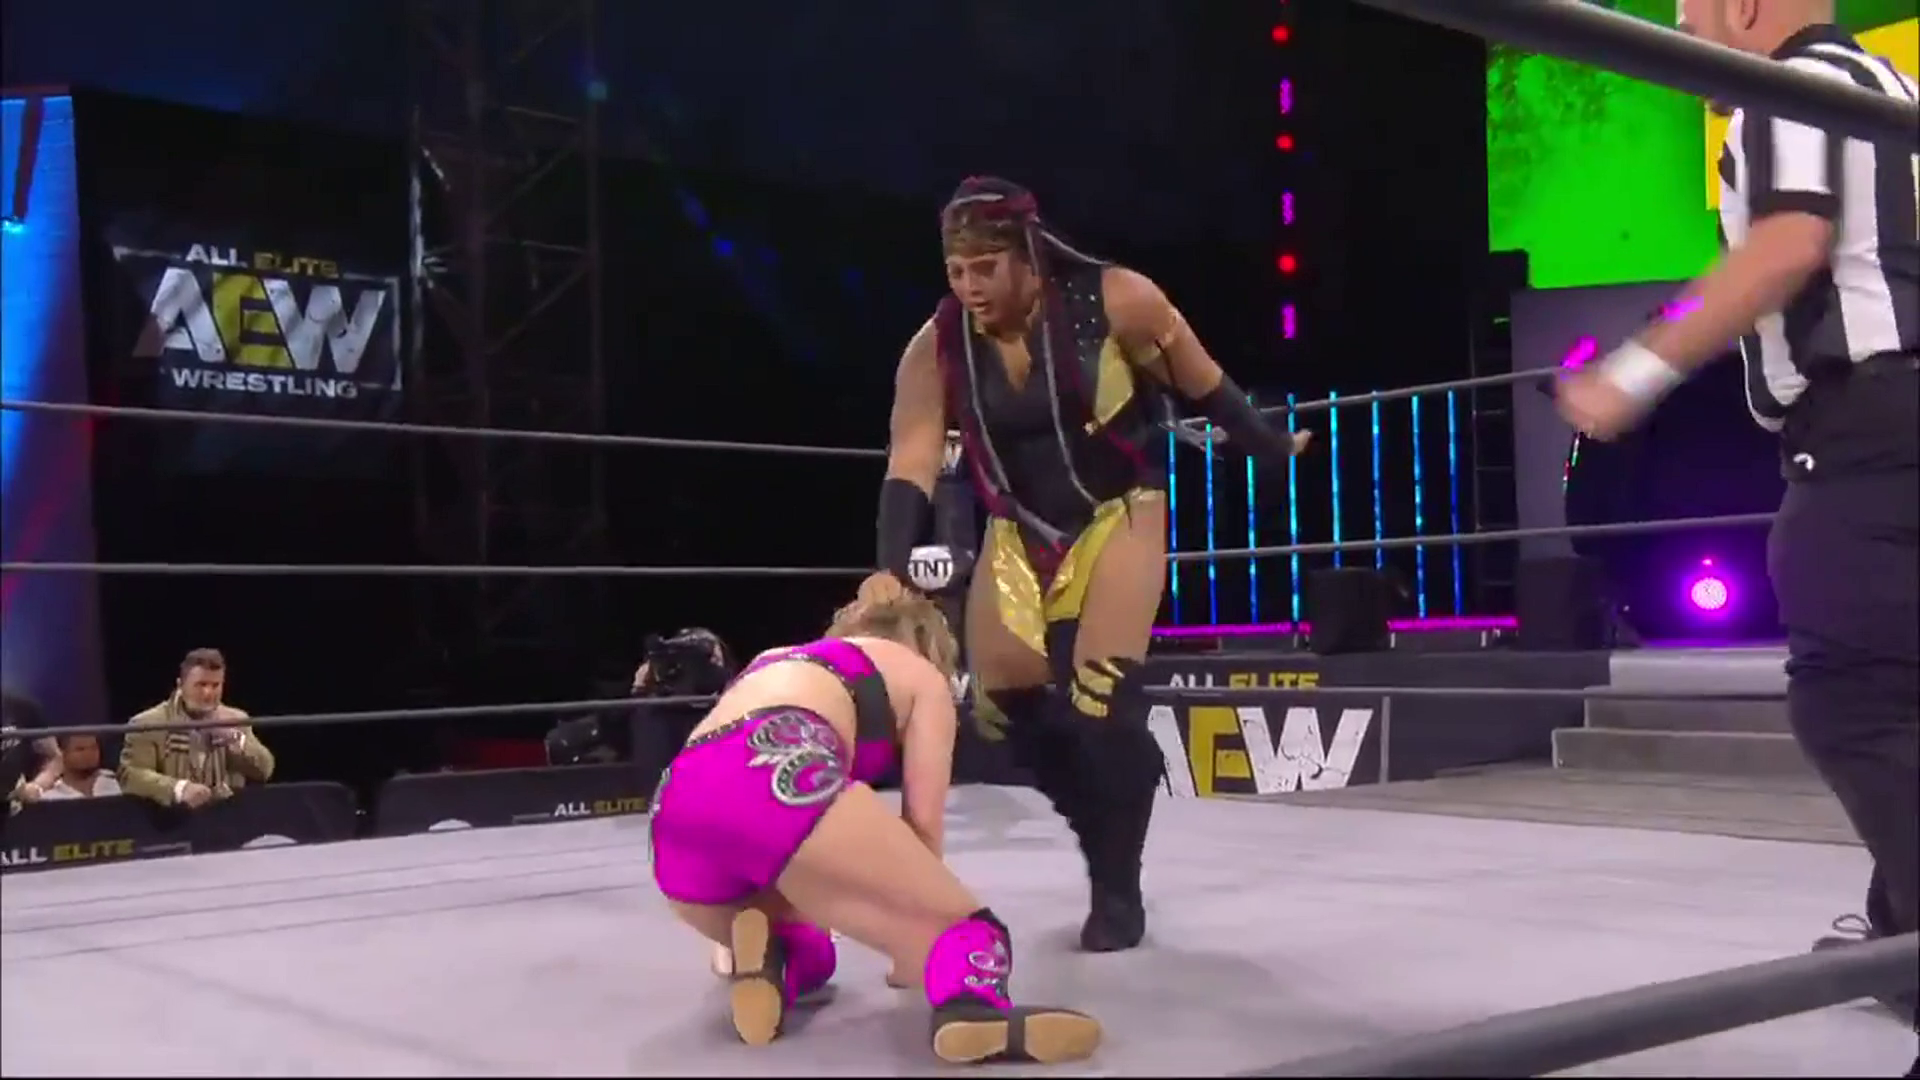 The AEW Women's World champion is back